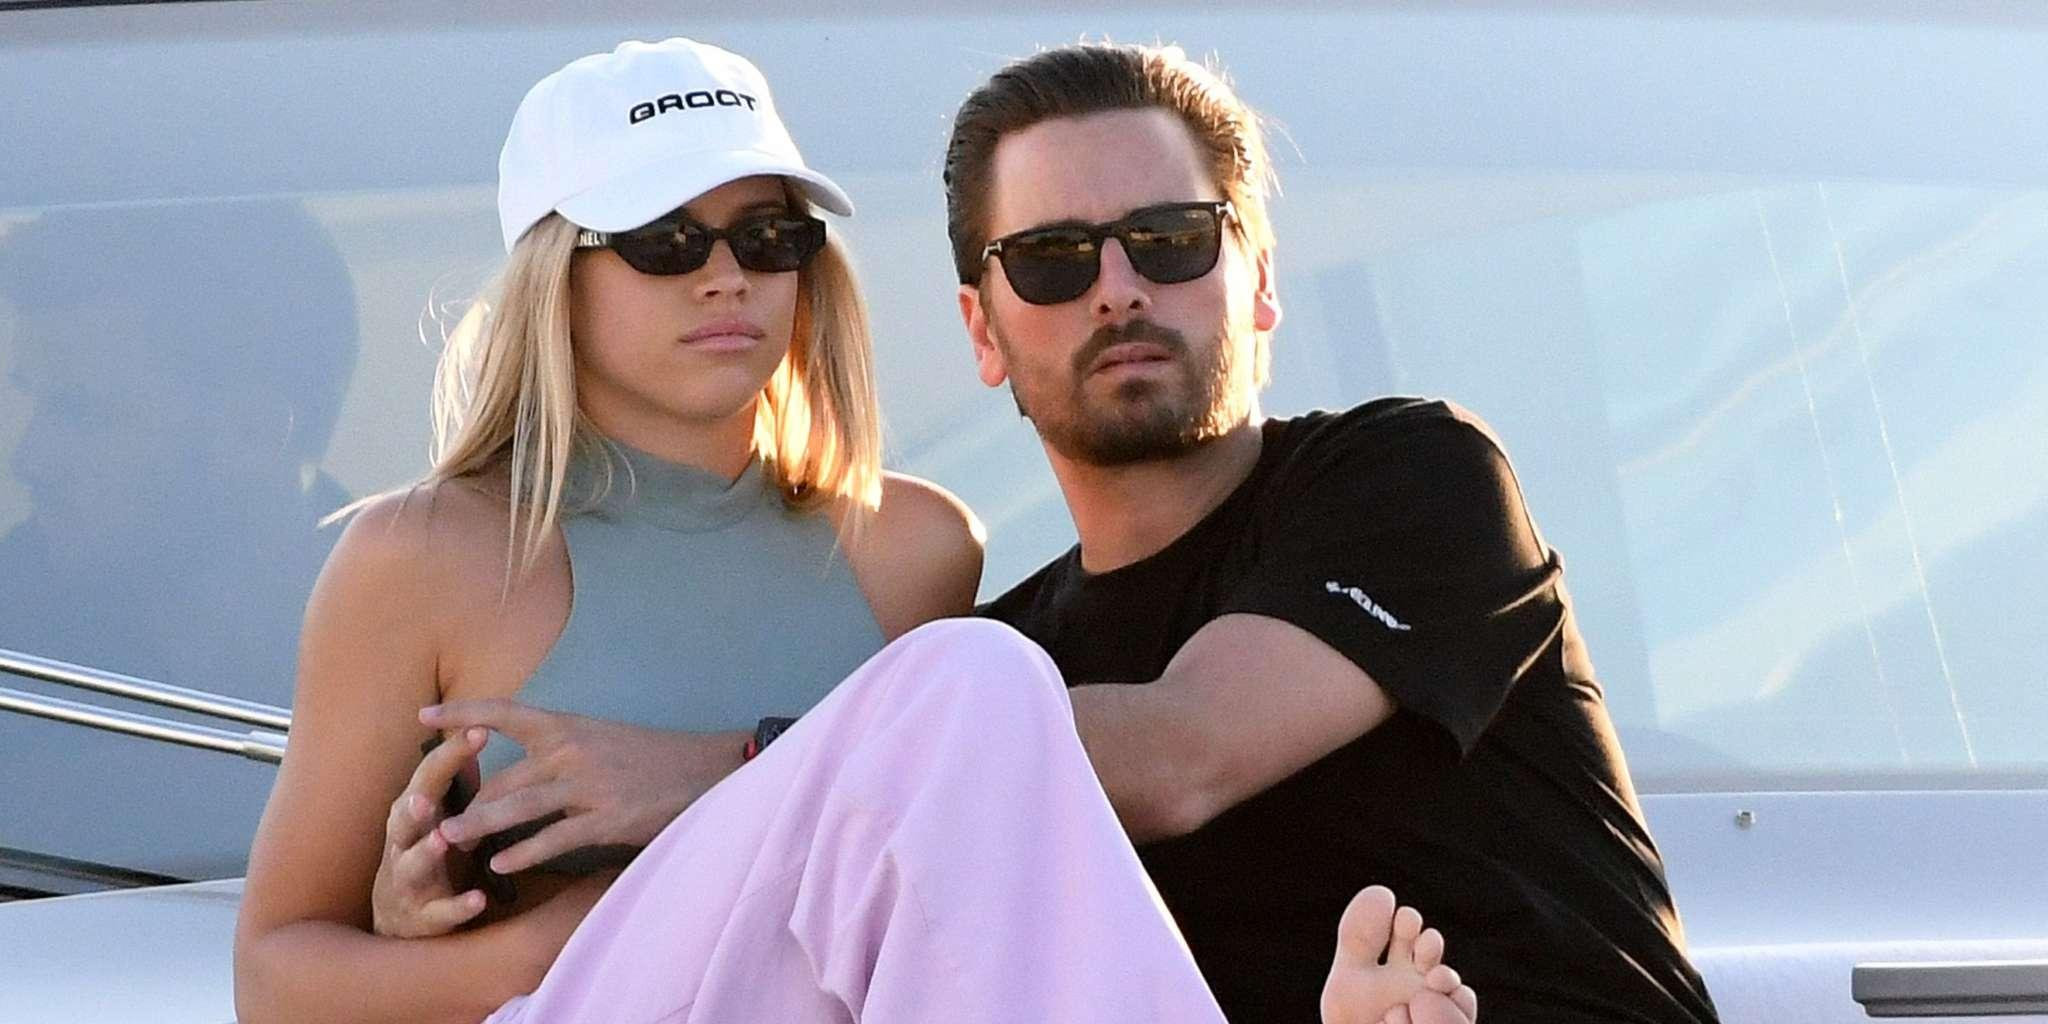 Scott Disick 'Very, Very Happy With' Sofia Richie - His Thoughts On Marrying Her Revealed!